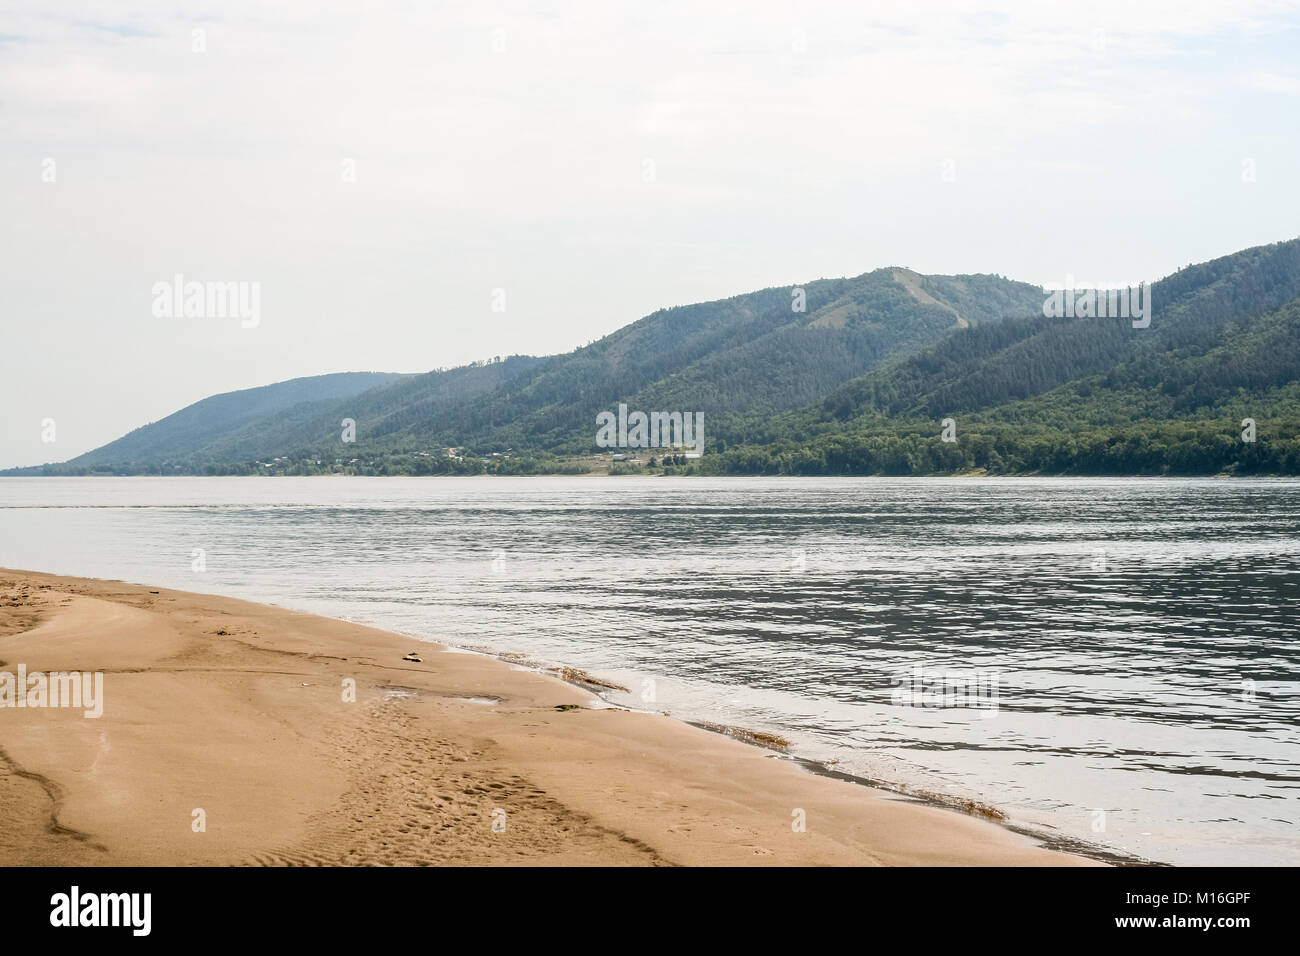 A sand braid, Zhiguli mountains and the riverbed of the Volga river. - Stock Image